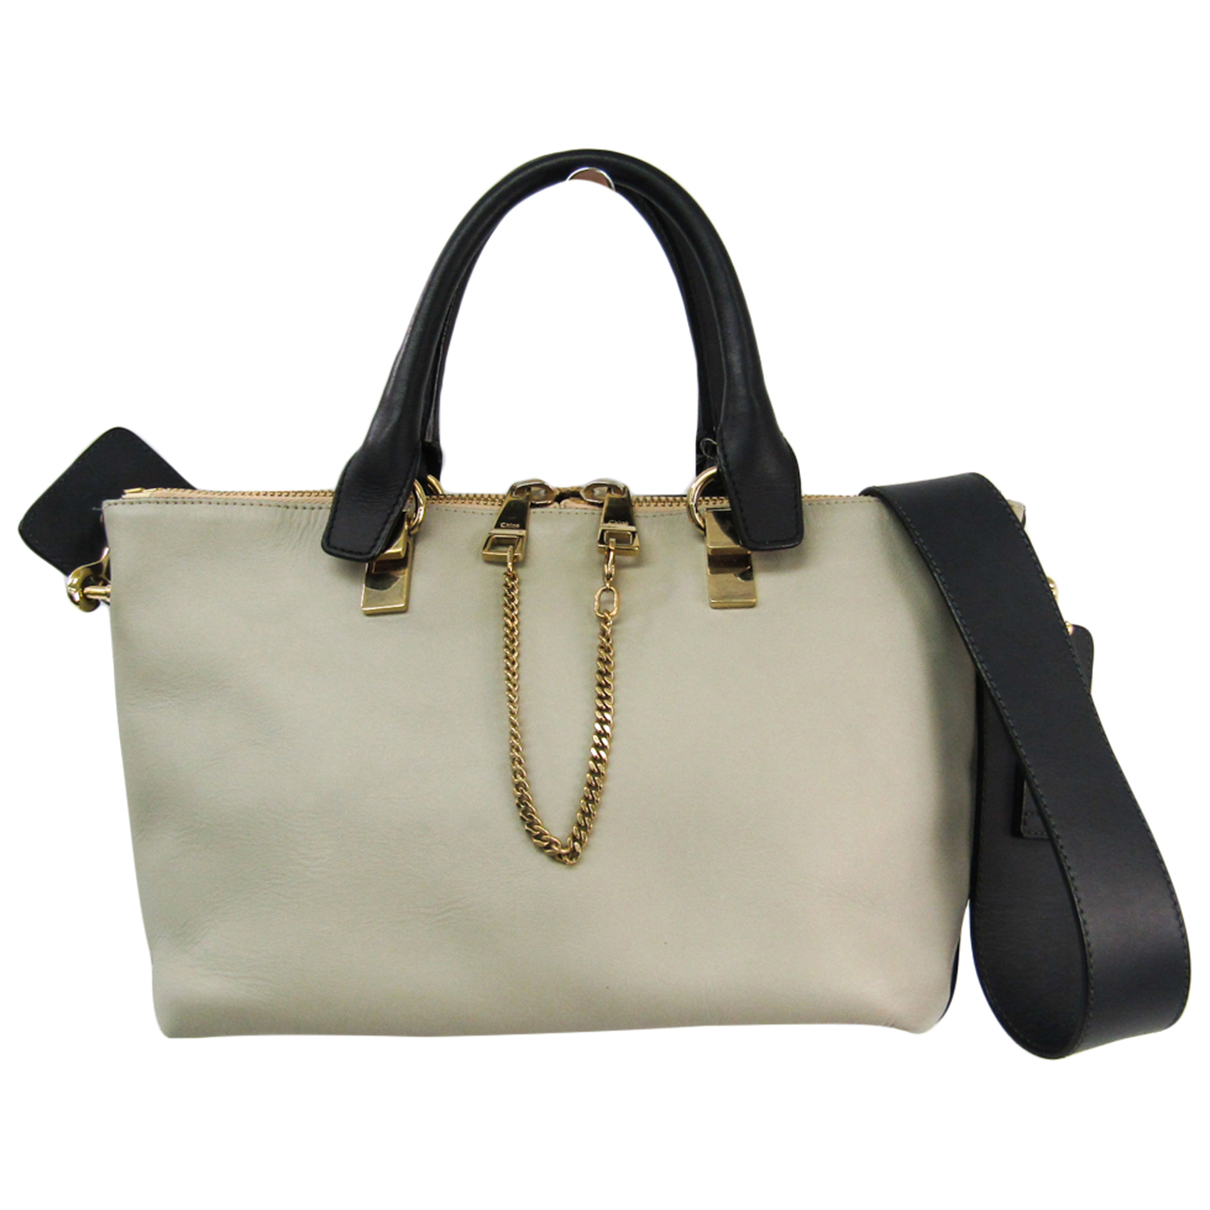 Chloé Baylee Beige Leather handbag for Women N